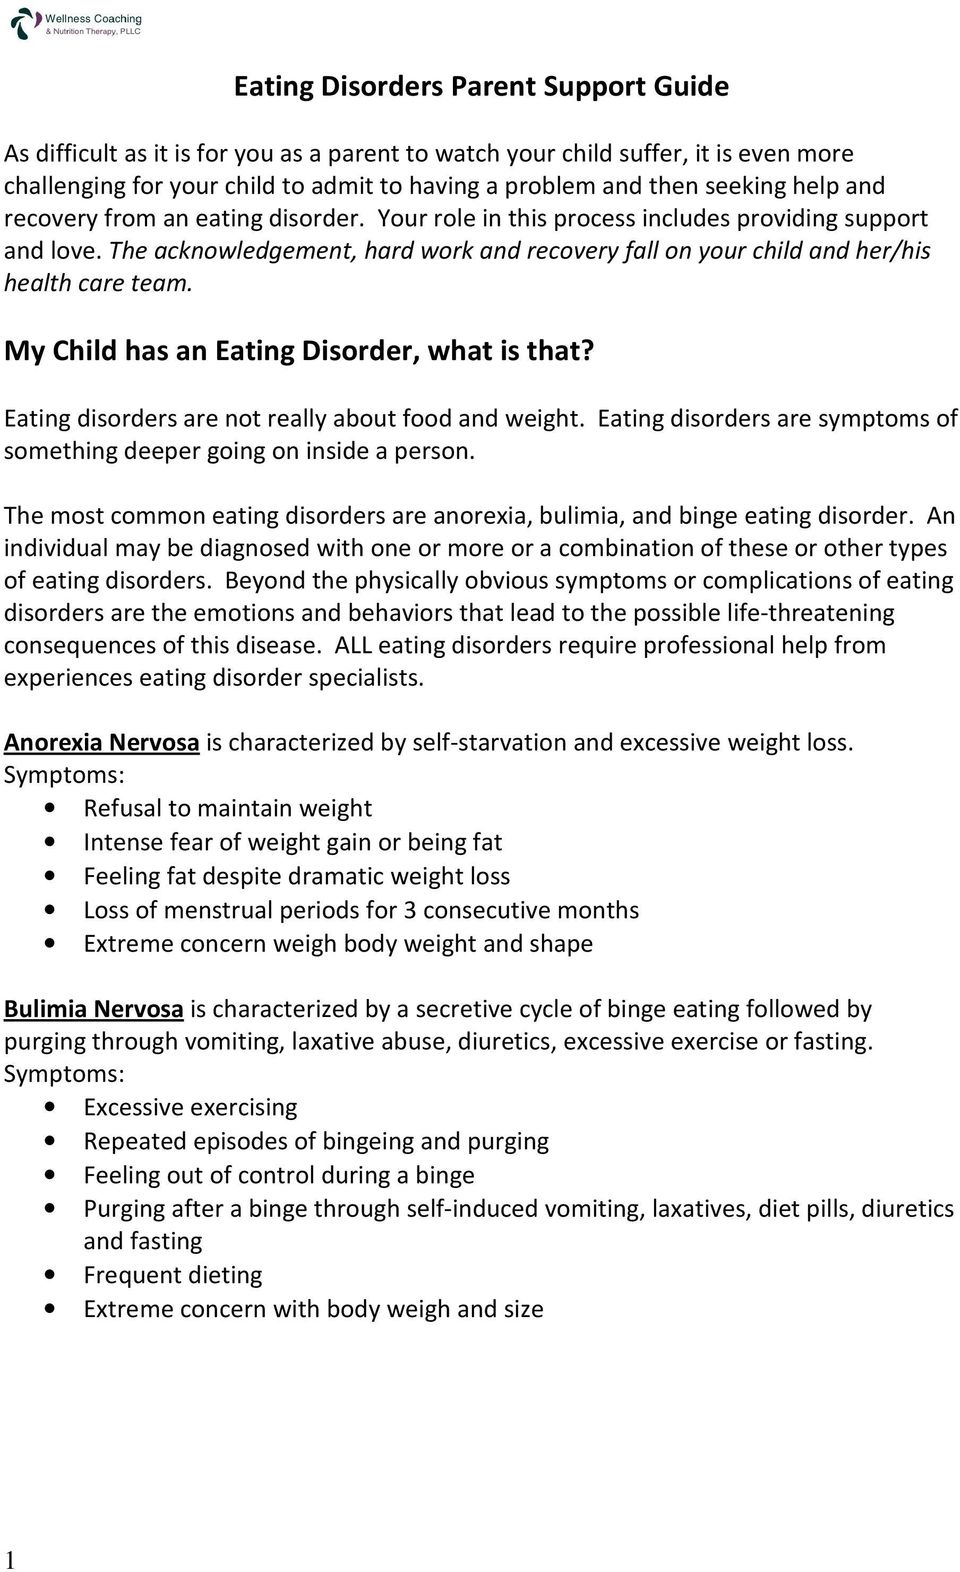 Eating Disorders Parent Support Guide - PDF